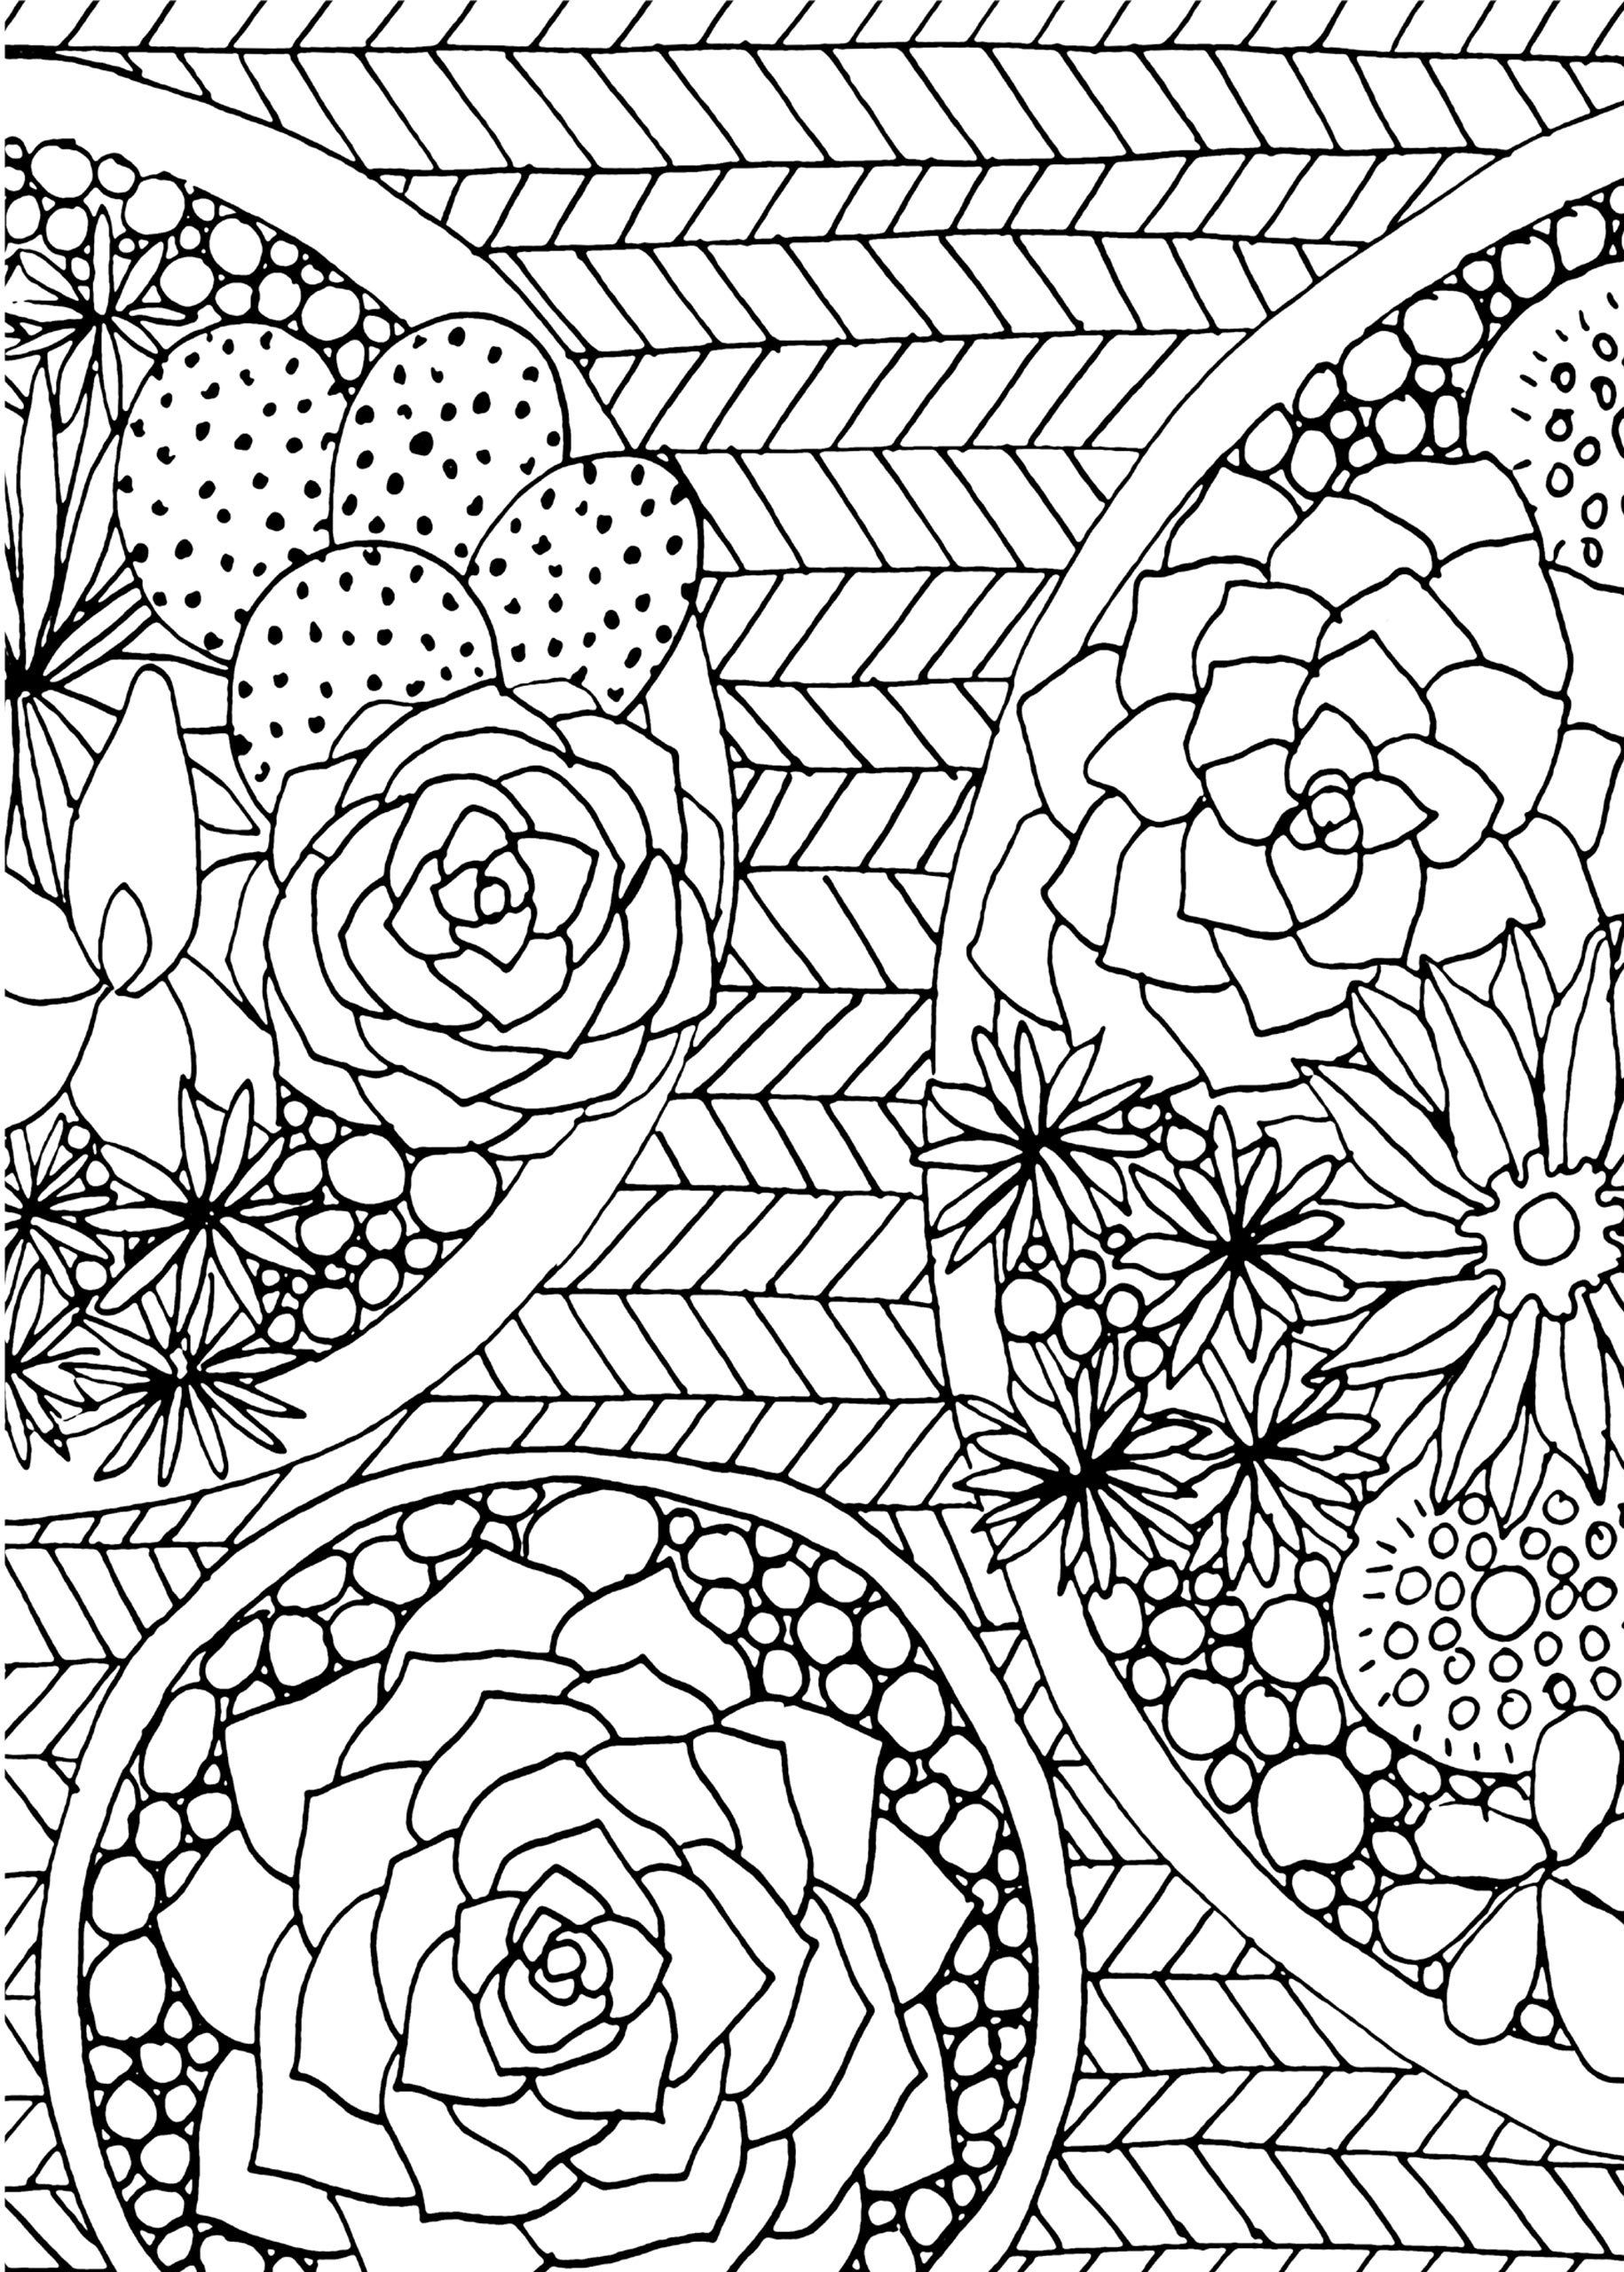 Amazon Succulents Portable Adult Coloring Book 31